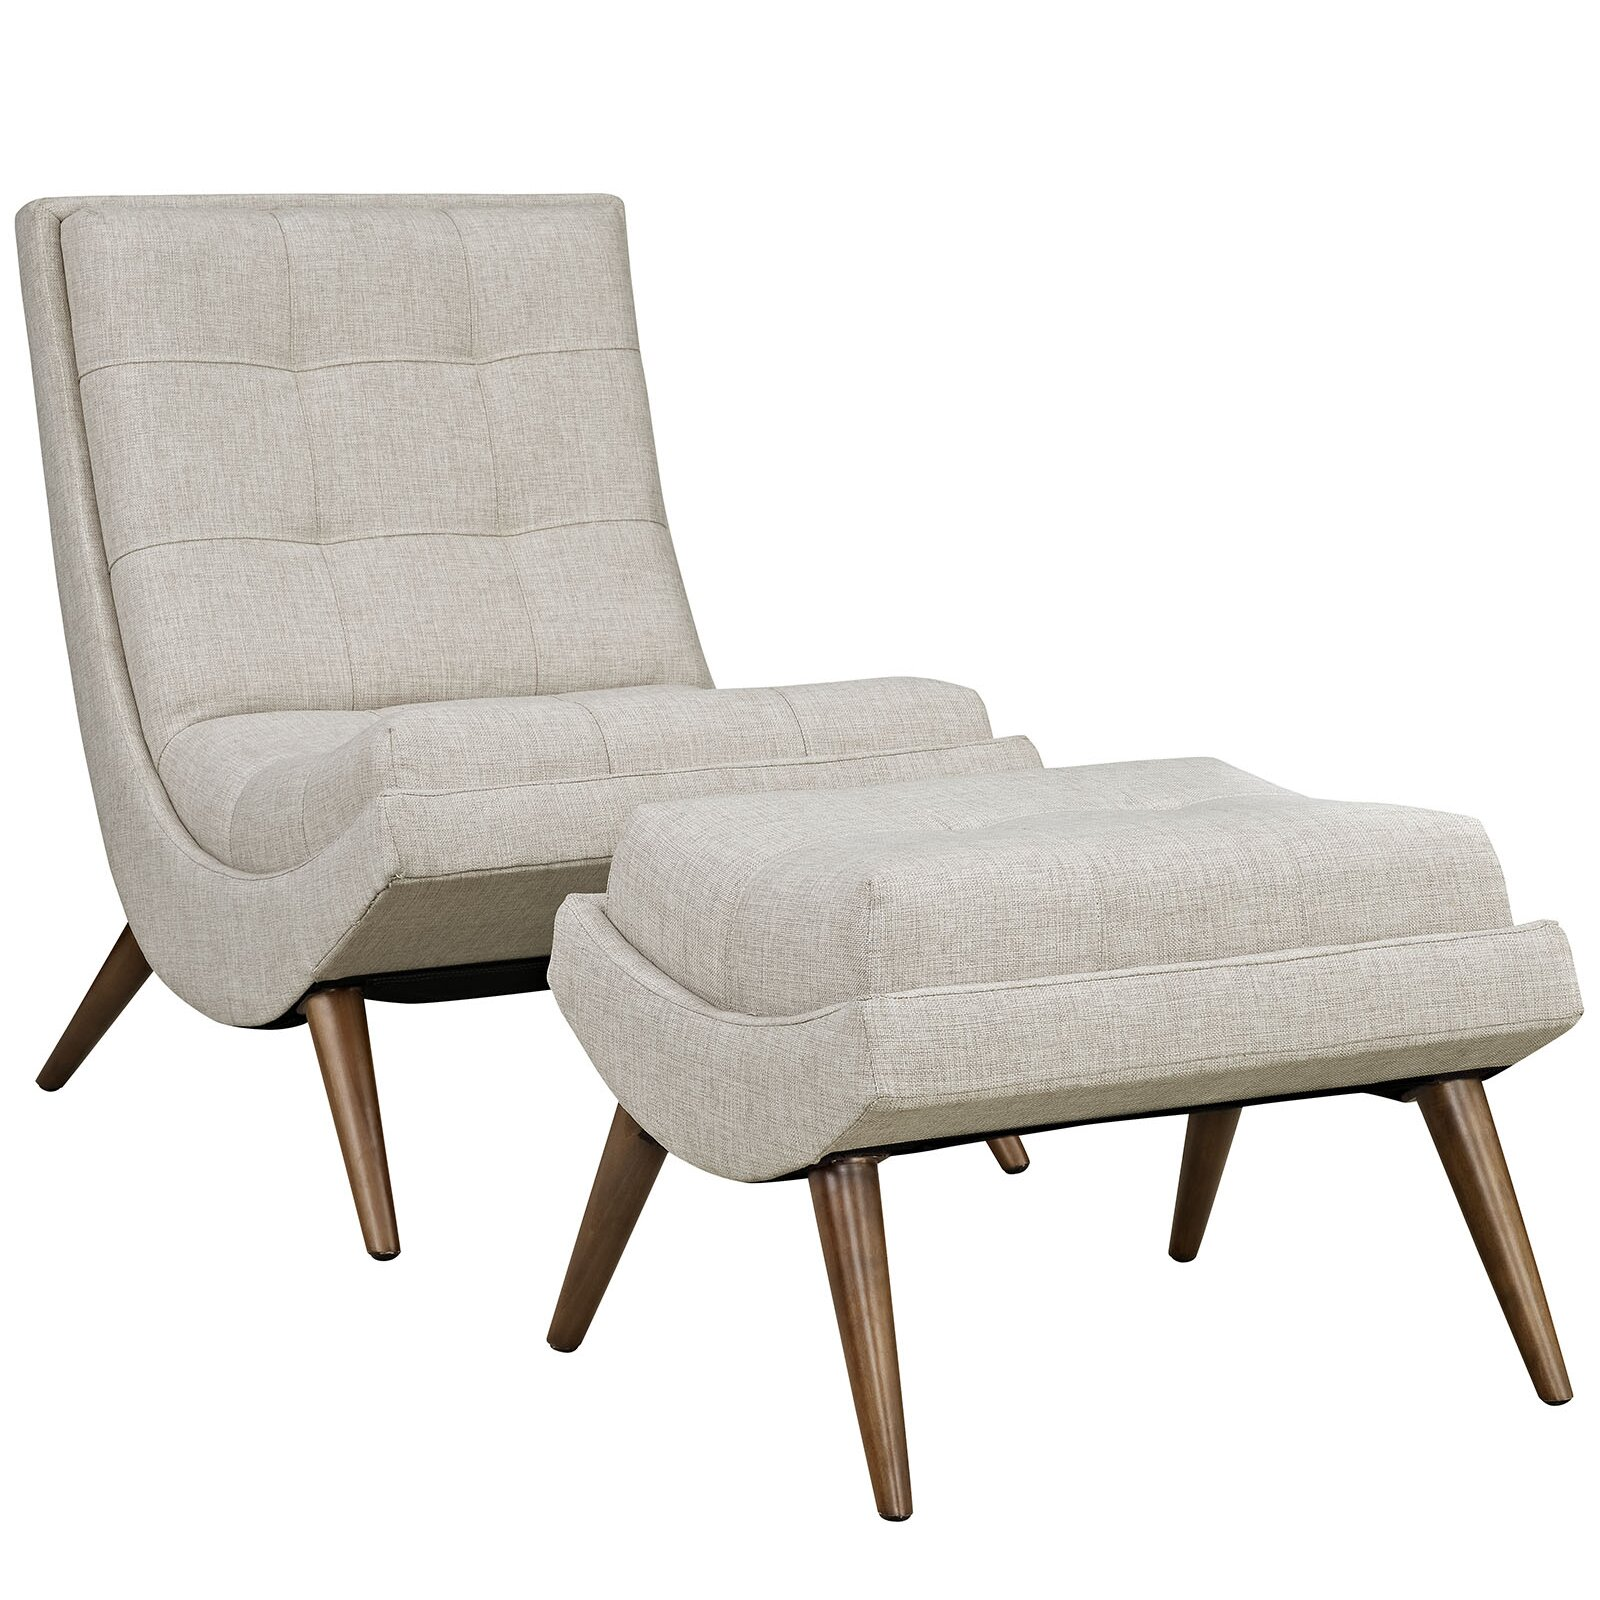 modway ramp fabric lounge chair and ottoman reviews. Black Bedroom Furniture Sets. Home Design Ideas